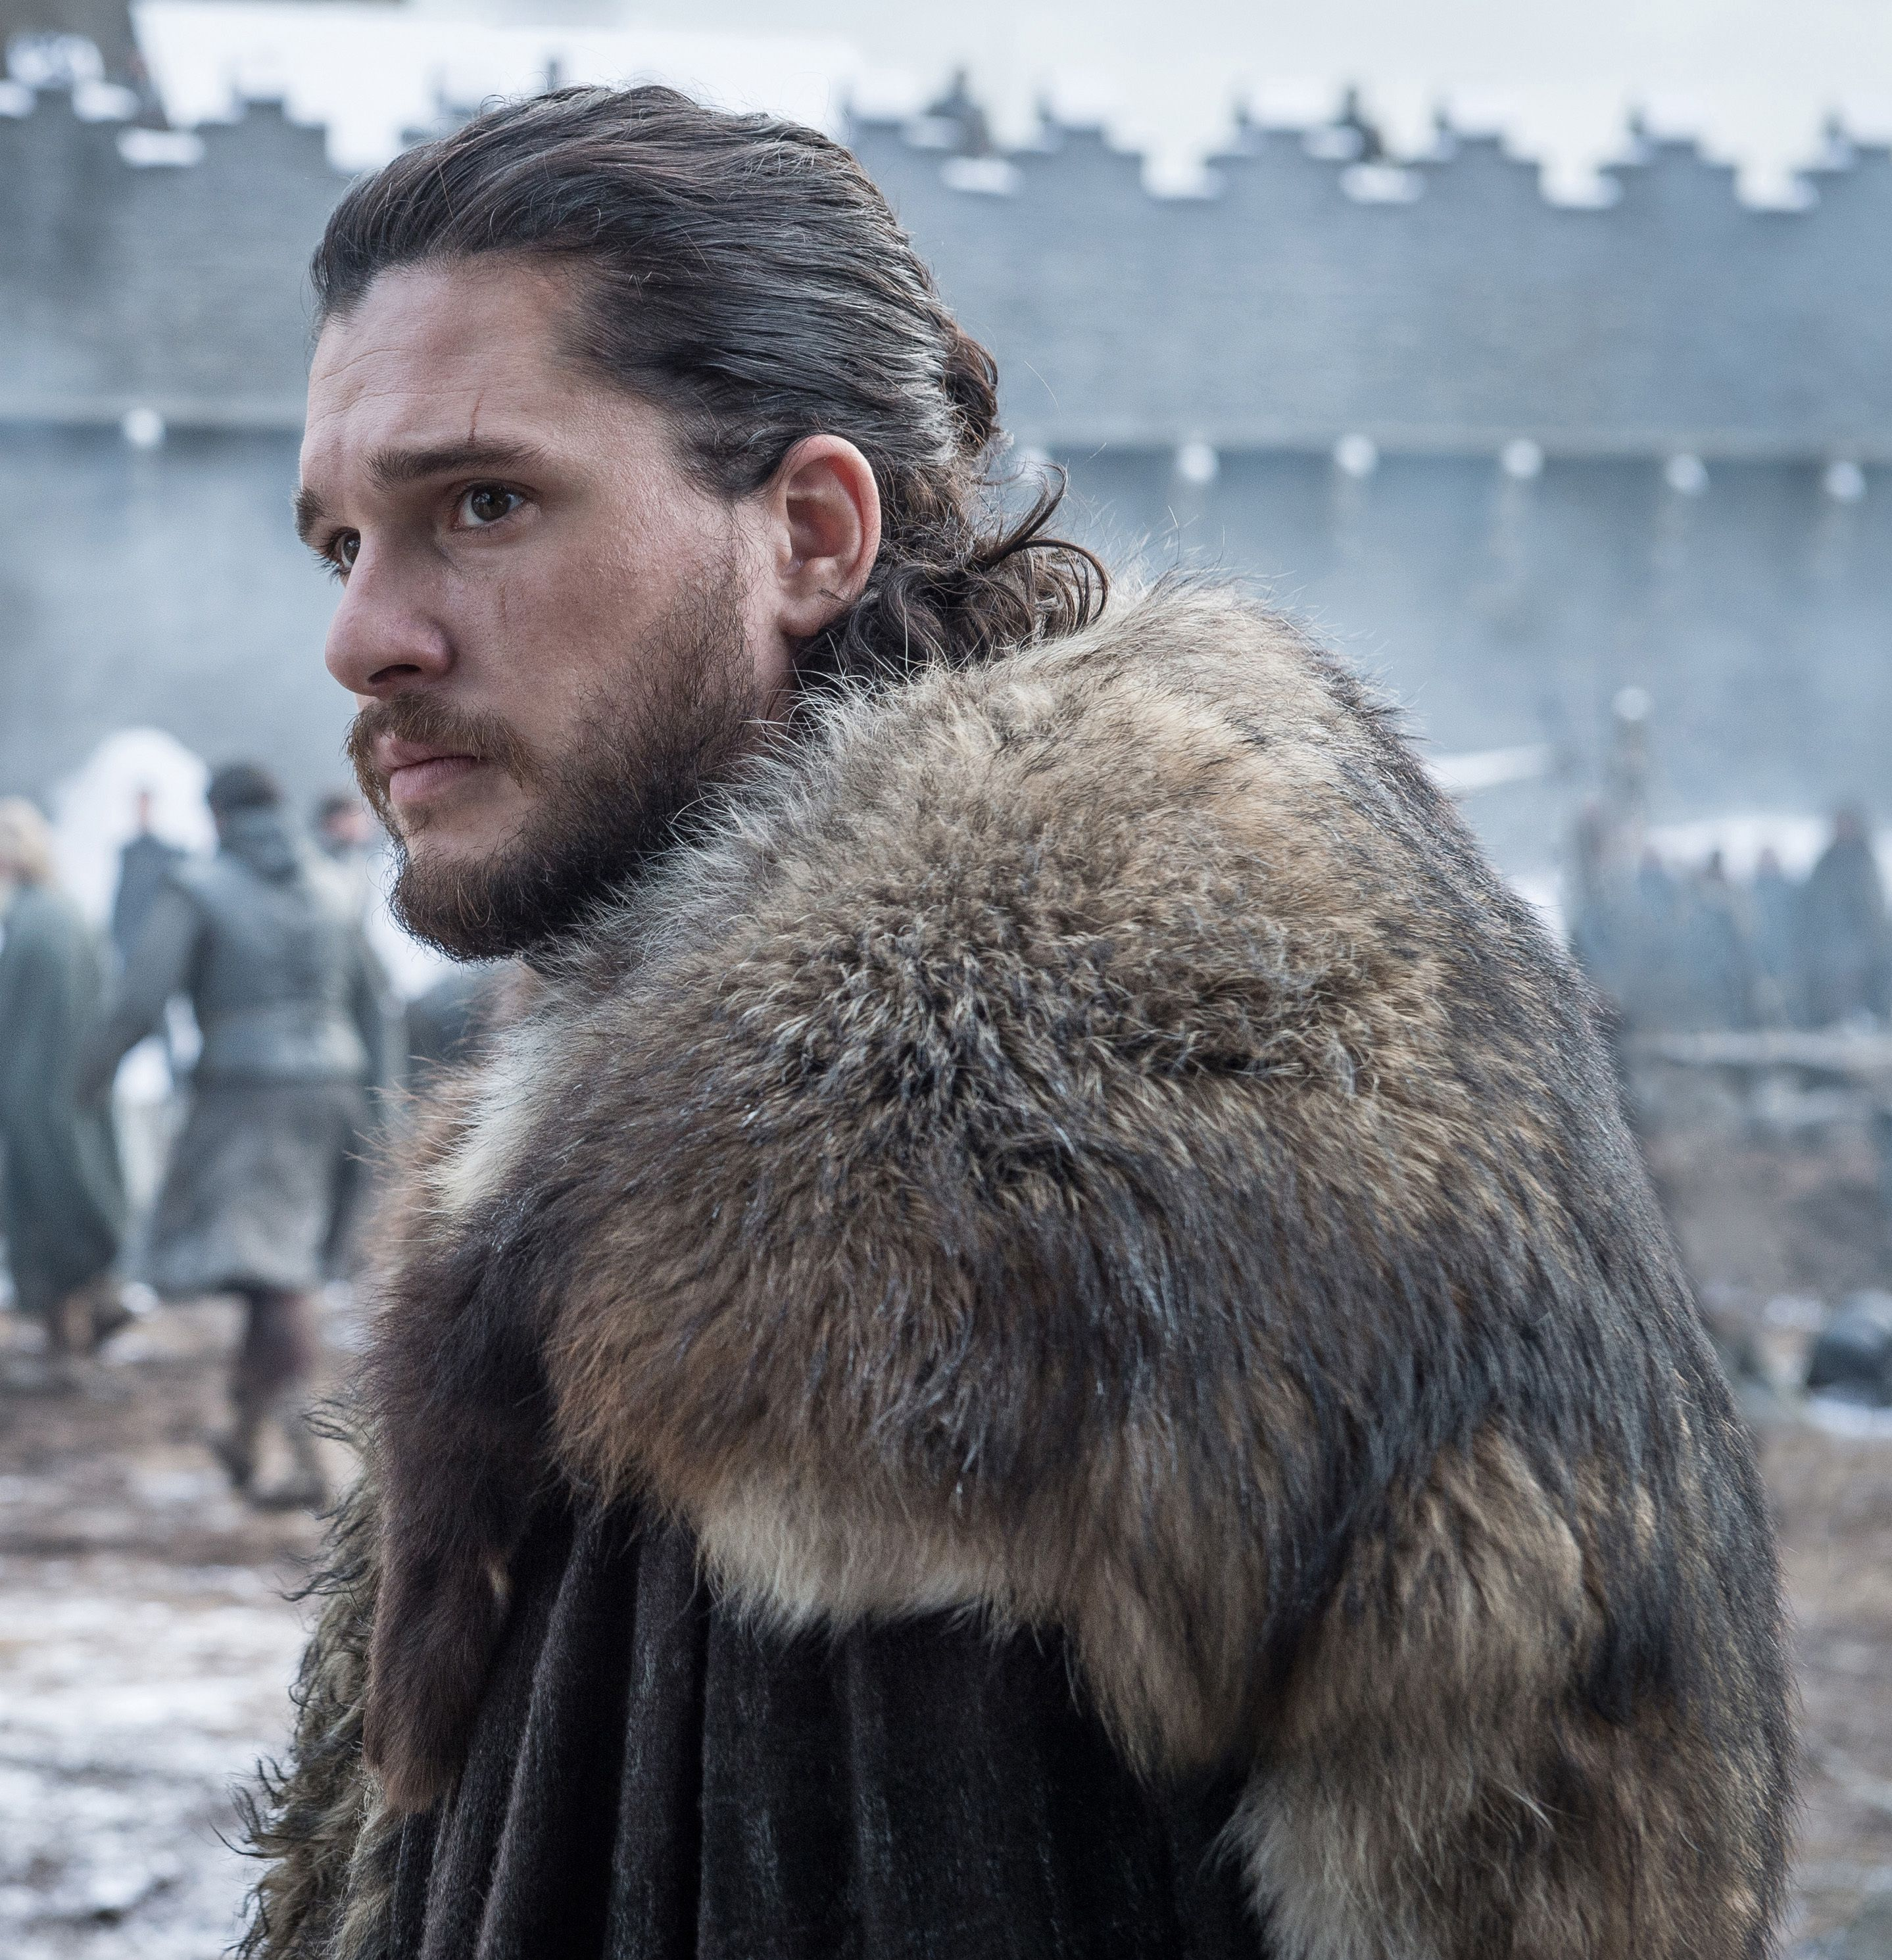 Why Doesn't Jon Snow Rule Westeros at the End of 'Game of Thrones'?